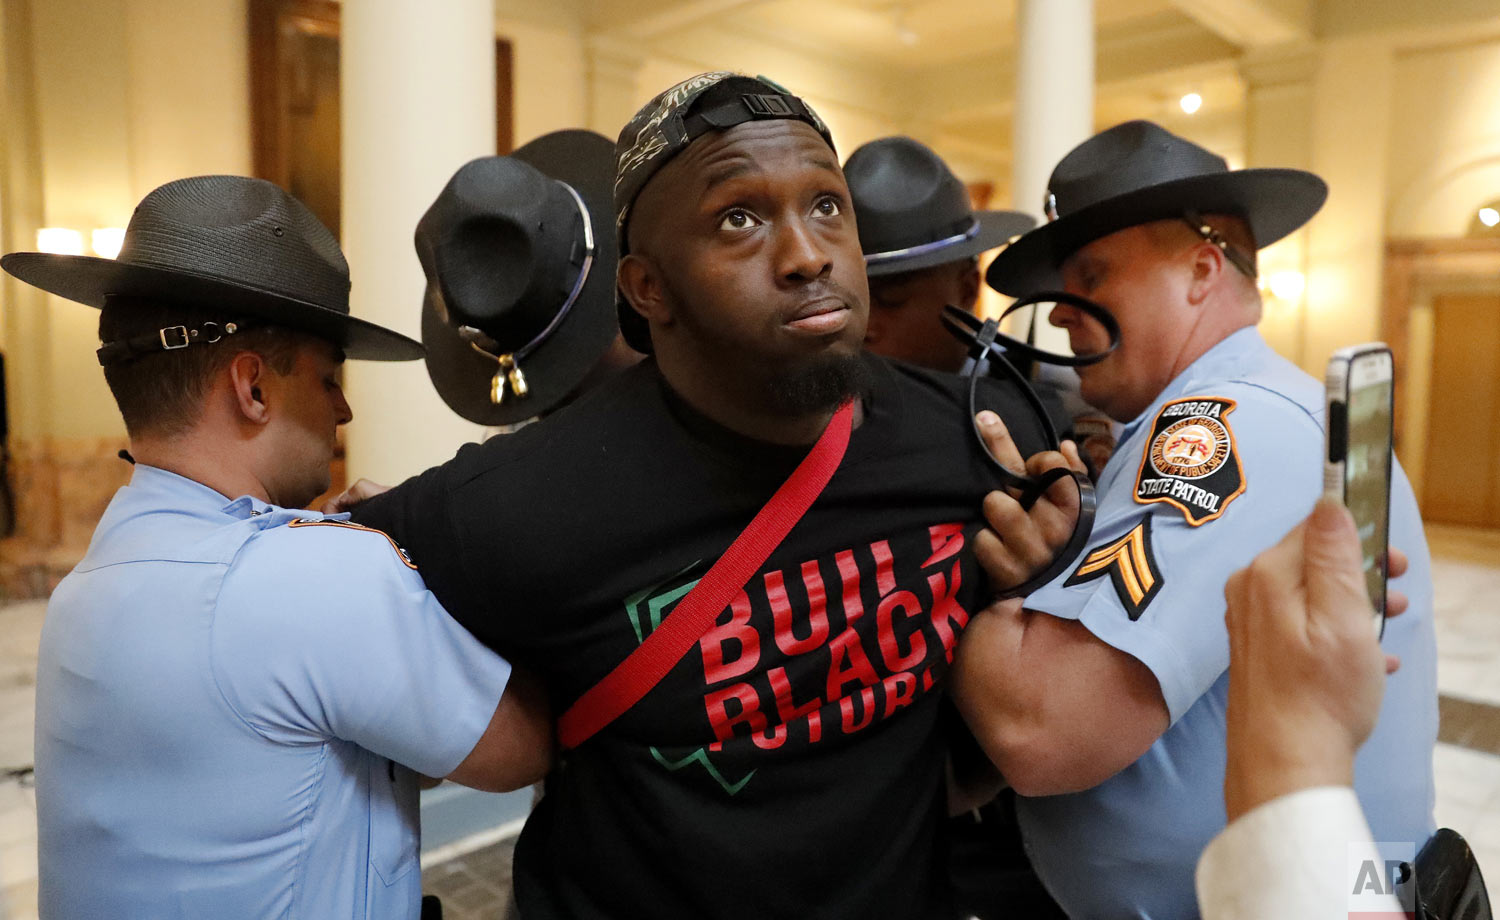 A man is arrested by Georgia state troopers during a protest over election ballot counts in the rotunda of the state Capitol building Tuesday, Nov. 13, 2018, in Atlanta. Several protesters, including a state senator, have been arrested during a demonstration at the Georgia state Capitol calling for tallying of uncounted ballots from the previous week's election. (AP Photo/John Bazemore)